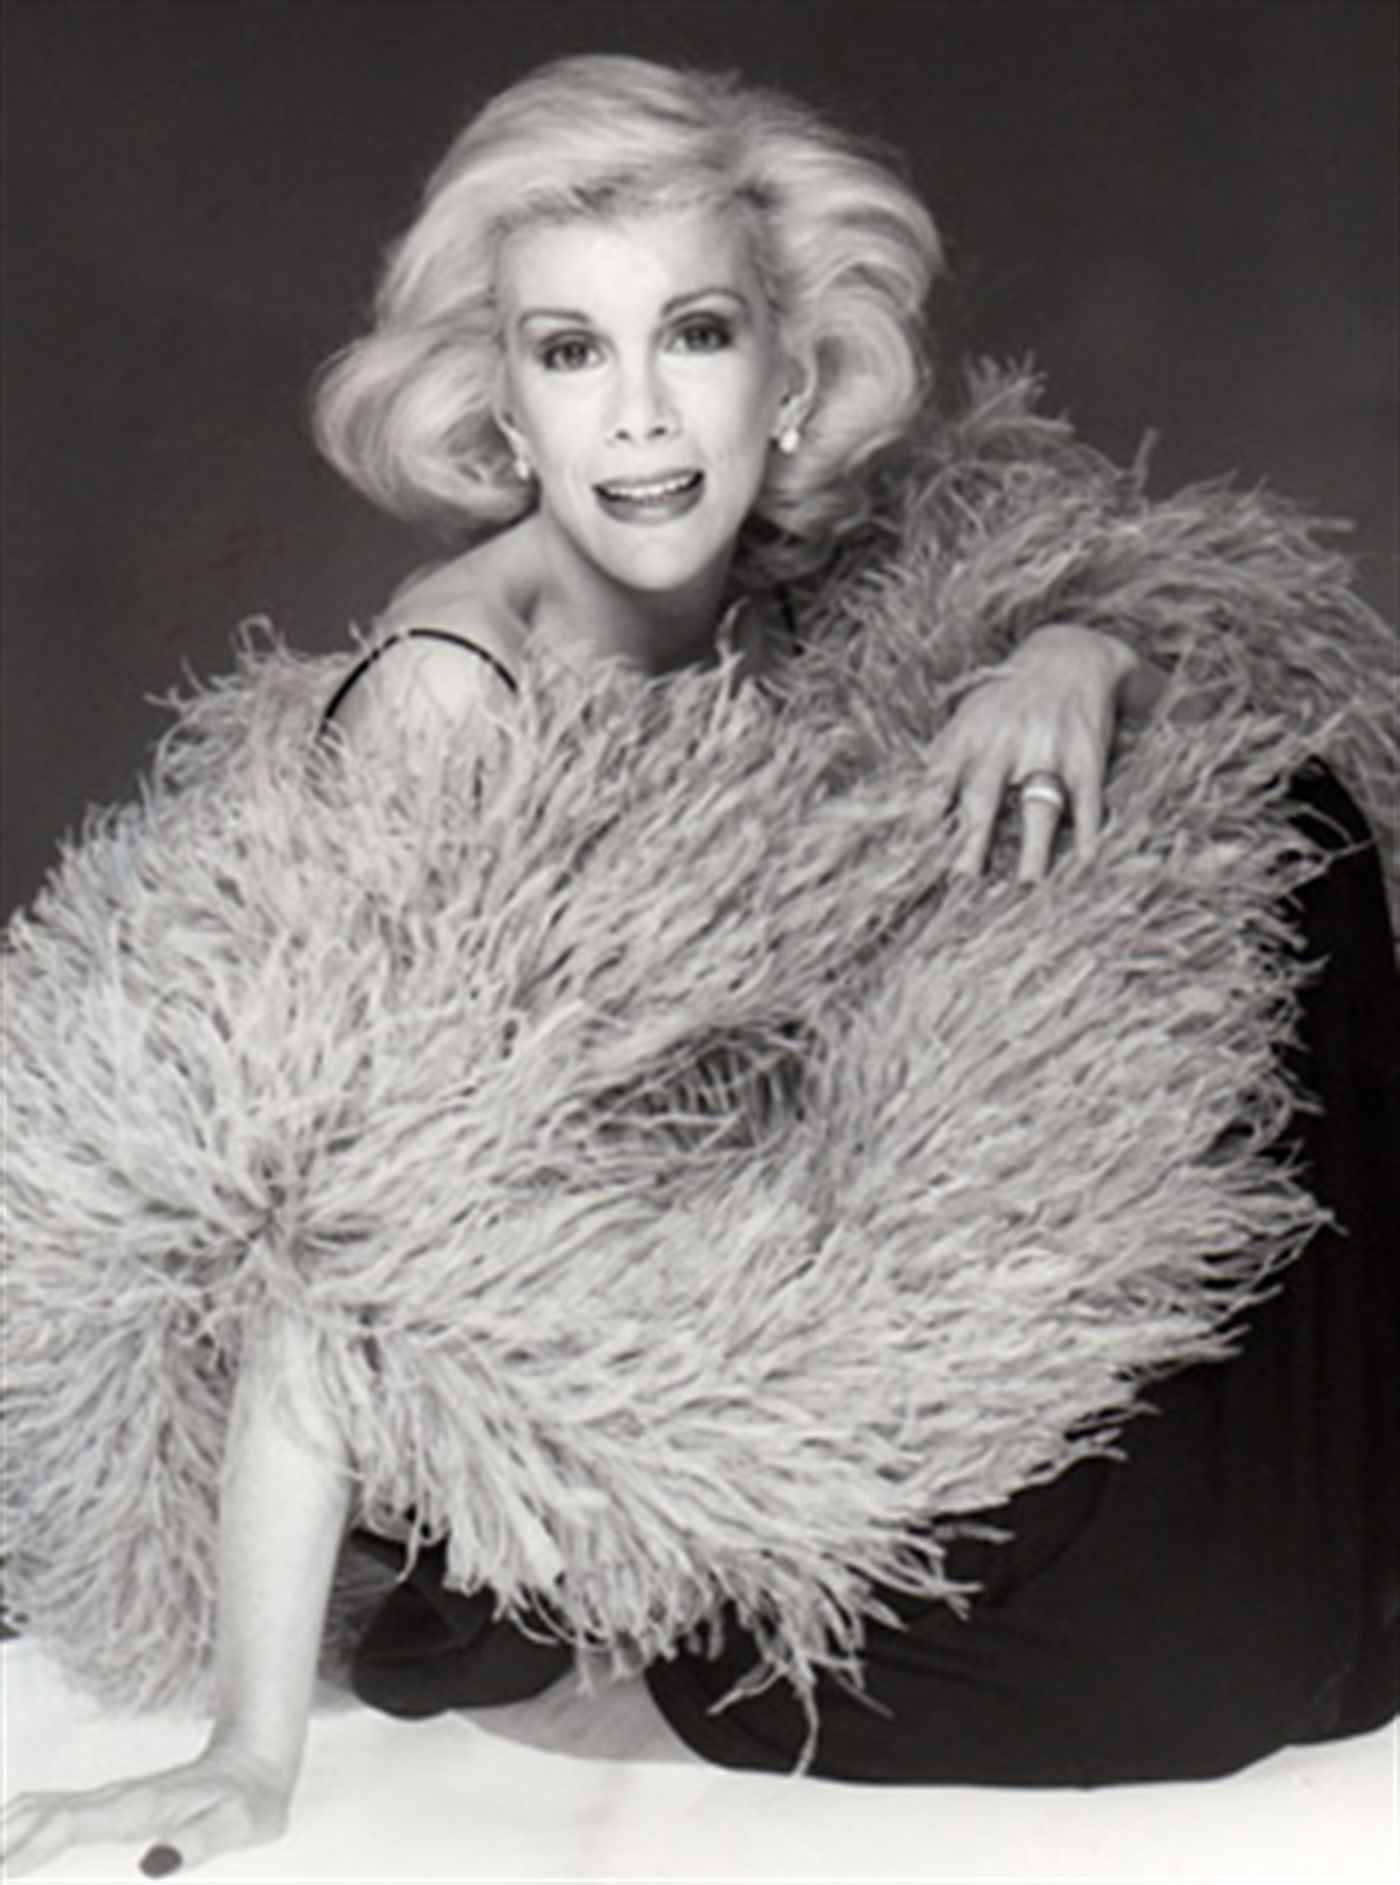 The Private Collection of Joan Rivers Online Auction